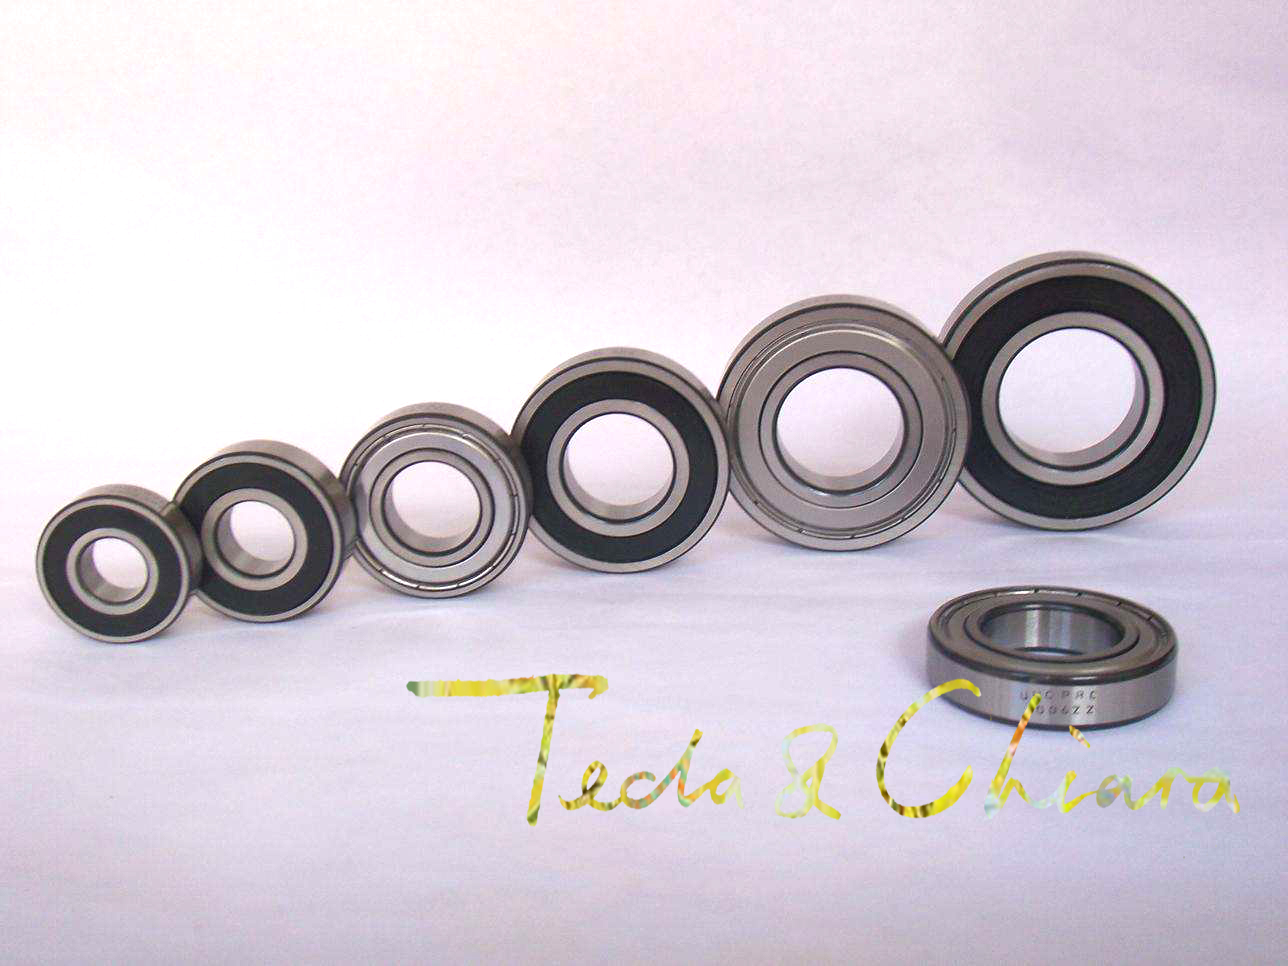 6707 6707ZZ 6707RS 6707-2Z 6707Z 6707-2RS ZZ RS RZ 2RZ Deep Groove Ball Bearings 35 x 44 x 5mm High Quality диван 3le rs vl7217 47a z 08 kd5110